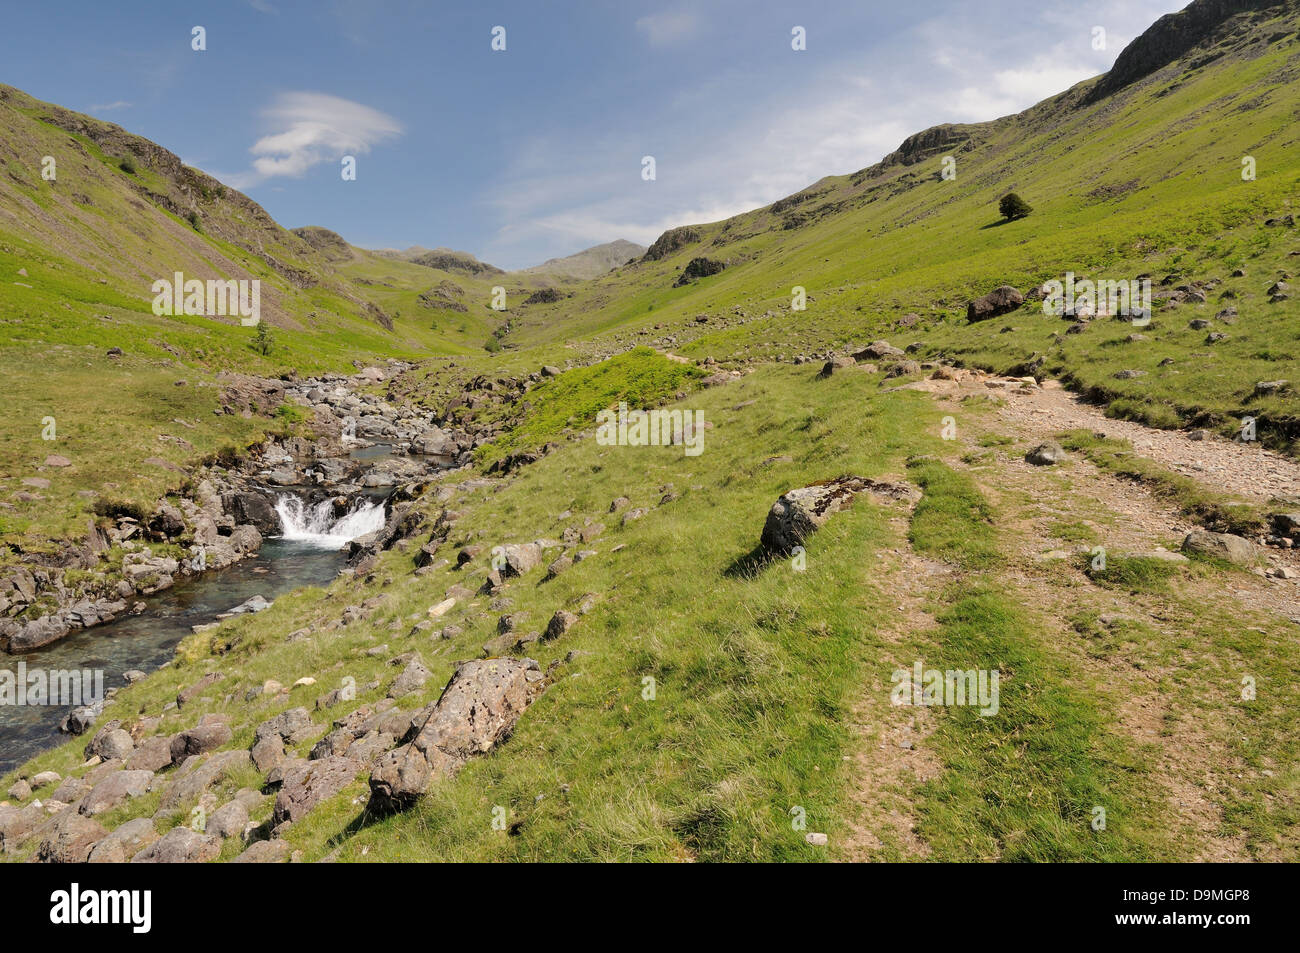 Footpath by the River Esk, Upper Eskdale, English Lake District - Stock Image